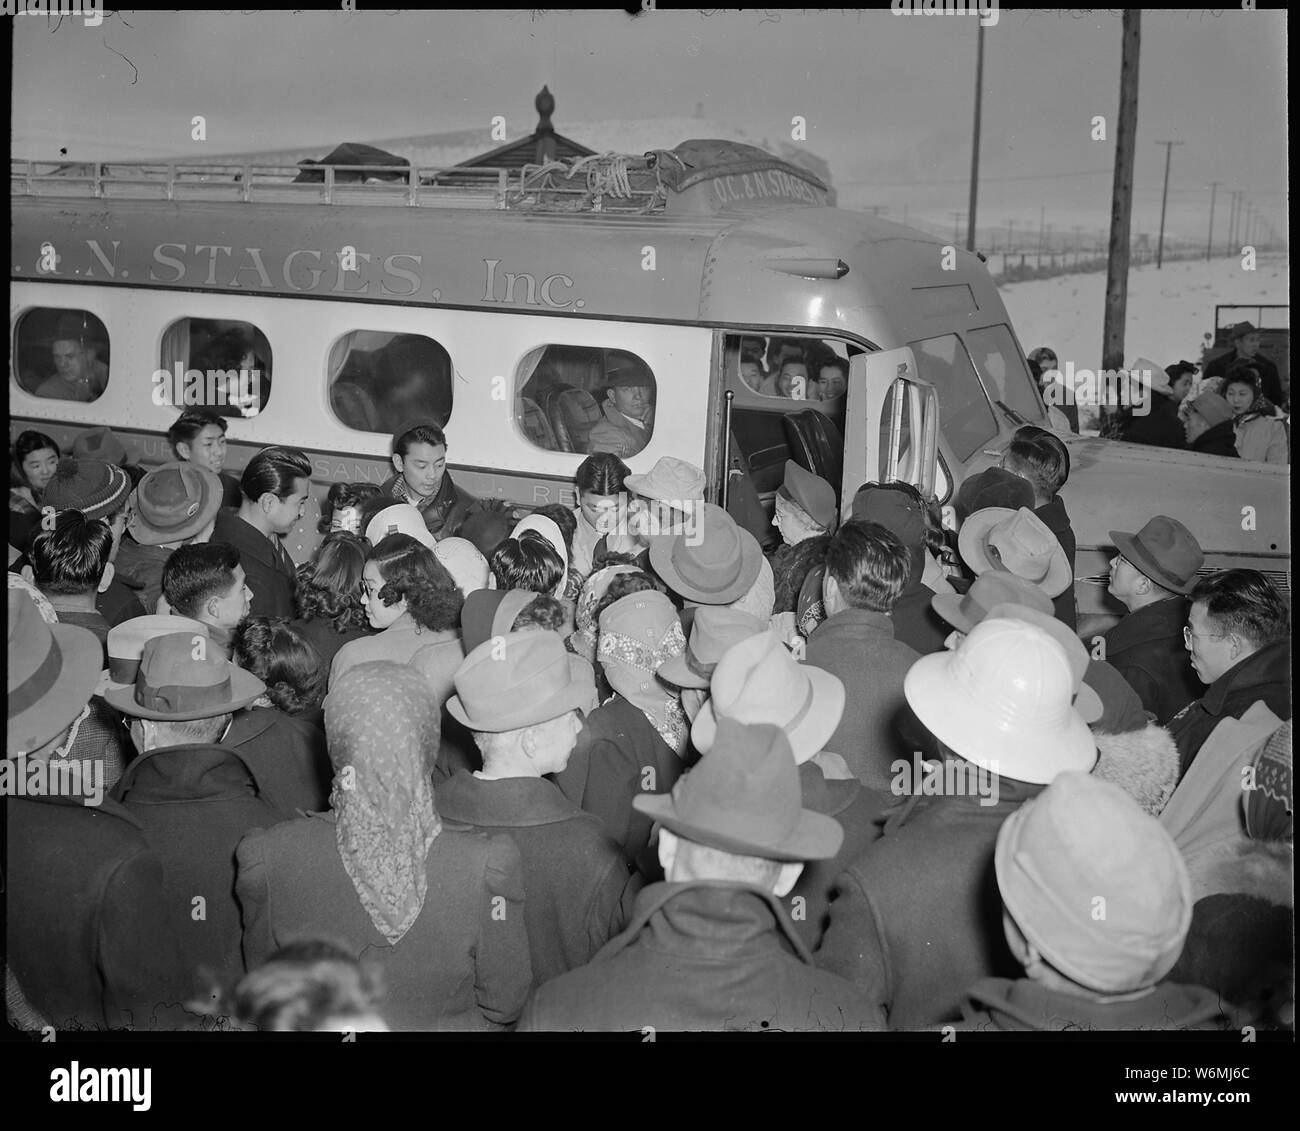 Tule Lake Relocation Center, Newell, California  A large